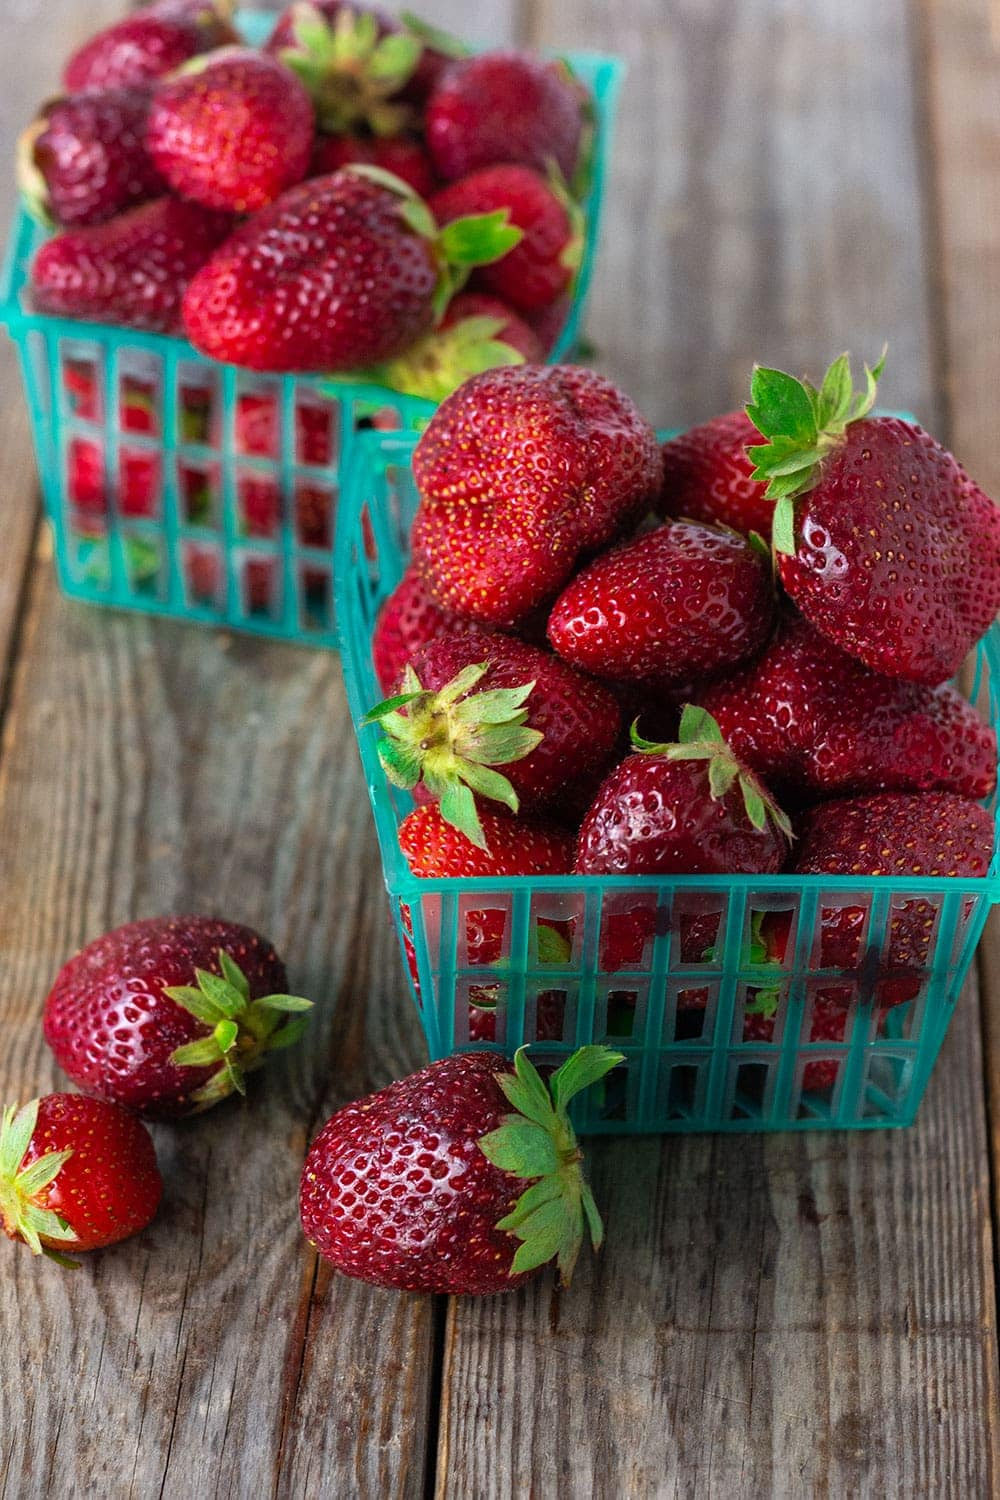 Fresh local strawberries picked from farm near me in green baskets